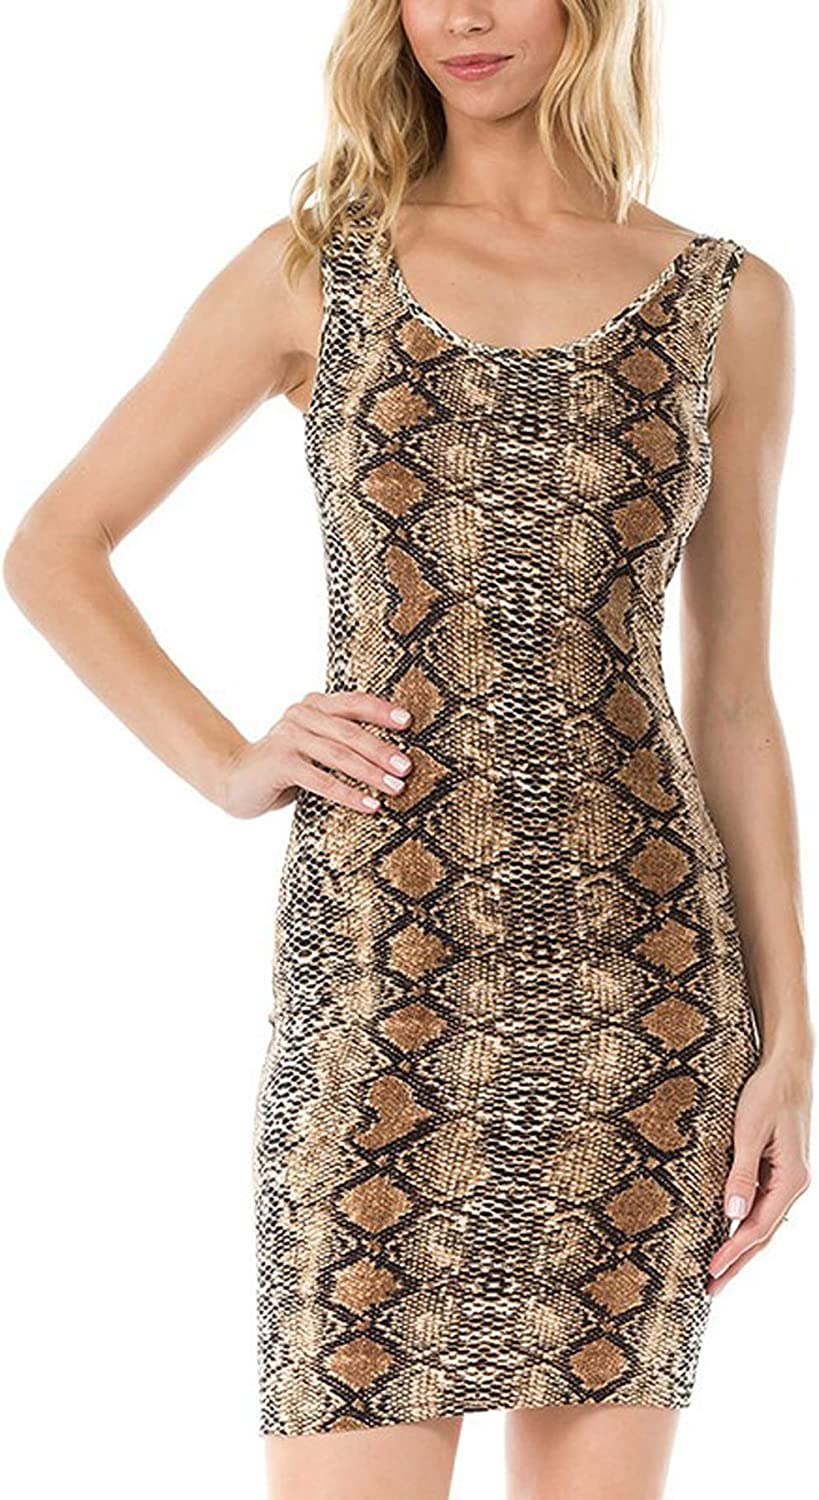 Melisse & Co. USA Sexy Animal Snakeskin Leopard Cheetah Print Dresses for Women